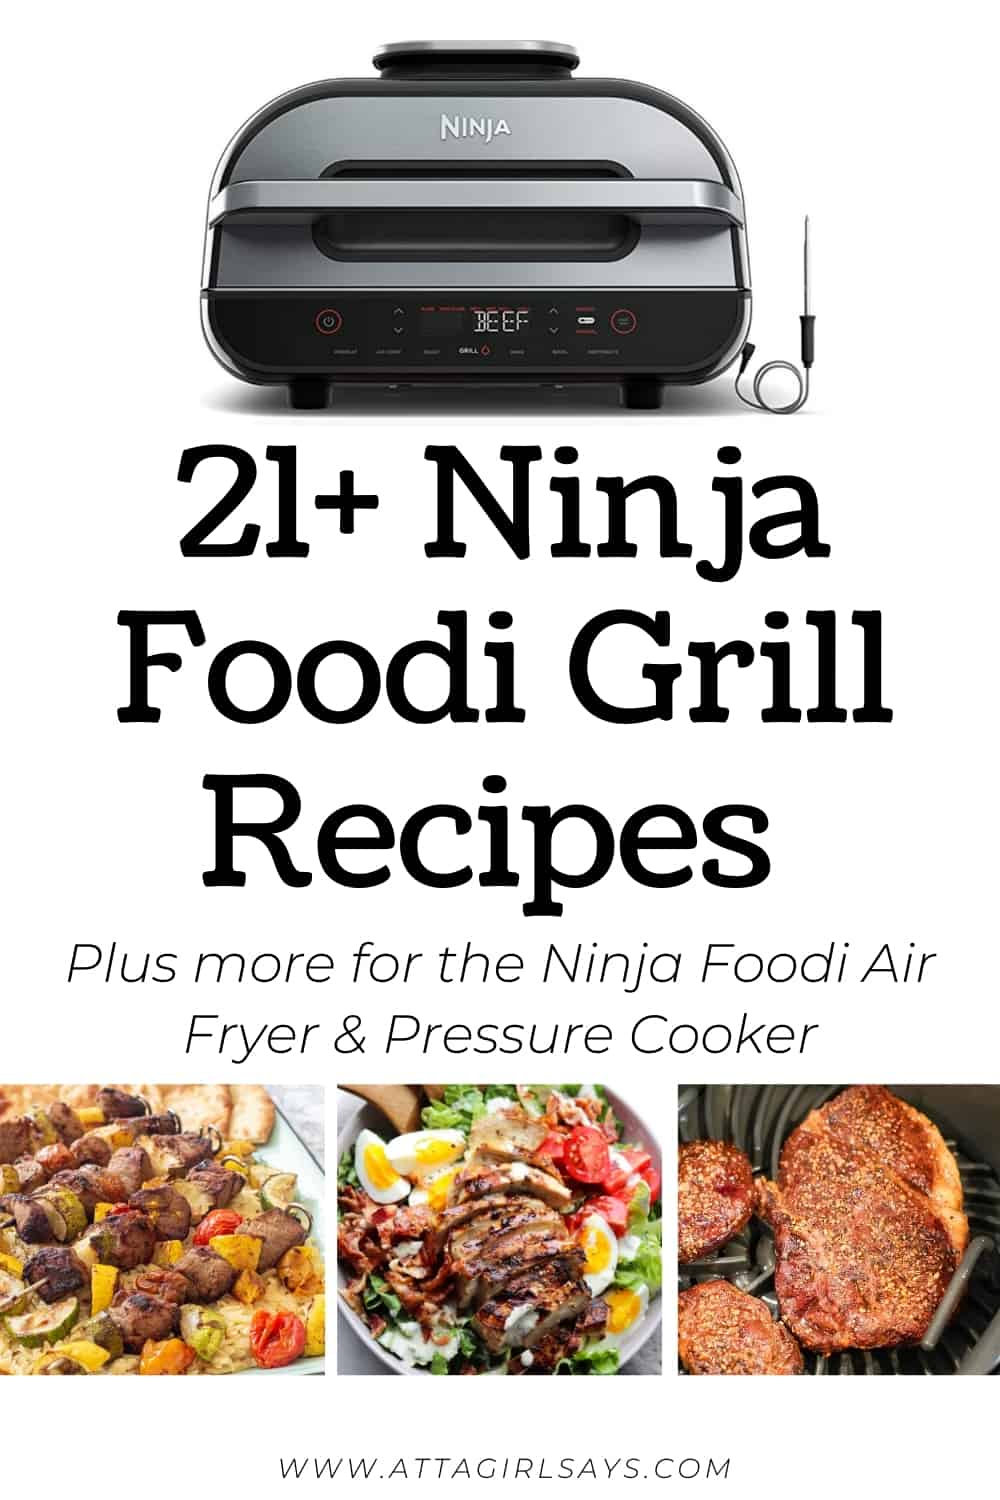 Ninja Foodi grill with caption 21 Ninja Foodi Grill Recipes and 3 photos of grilled dishes